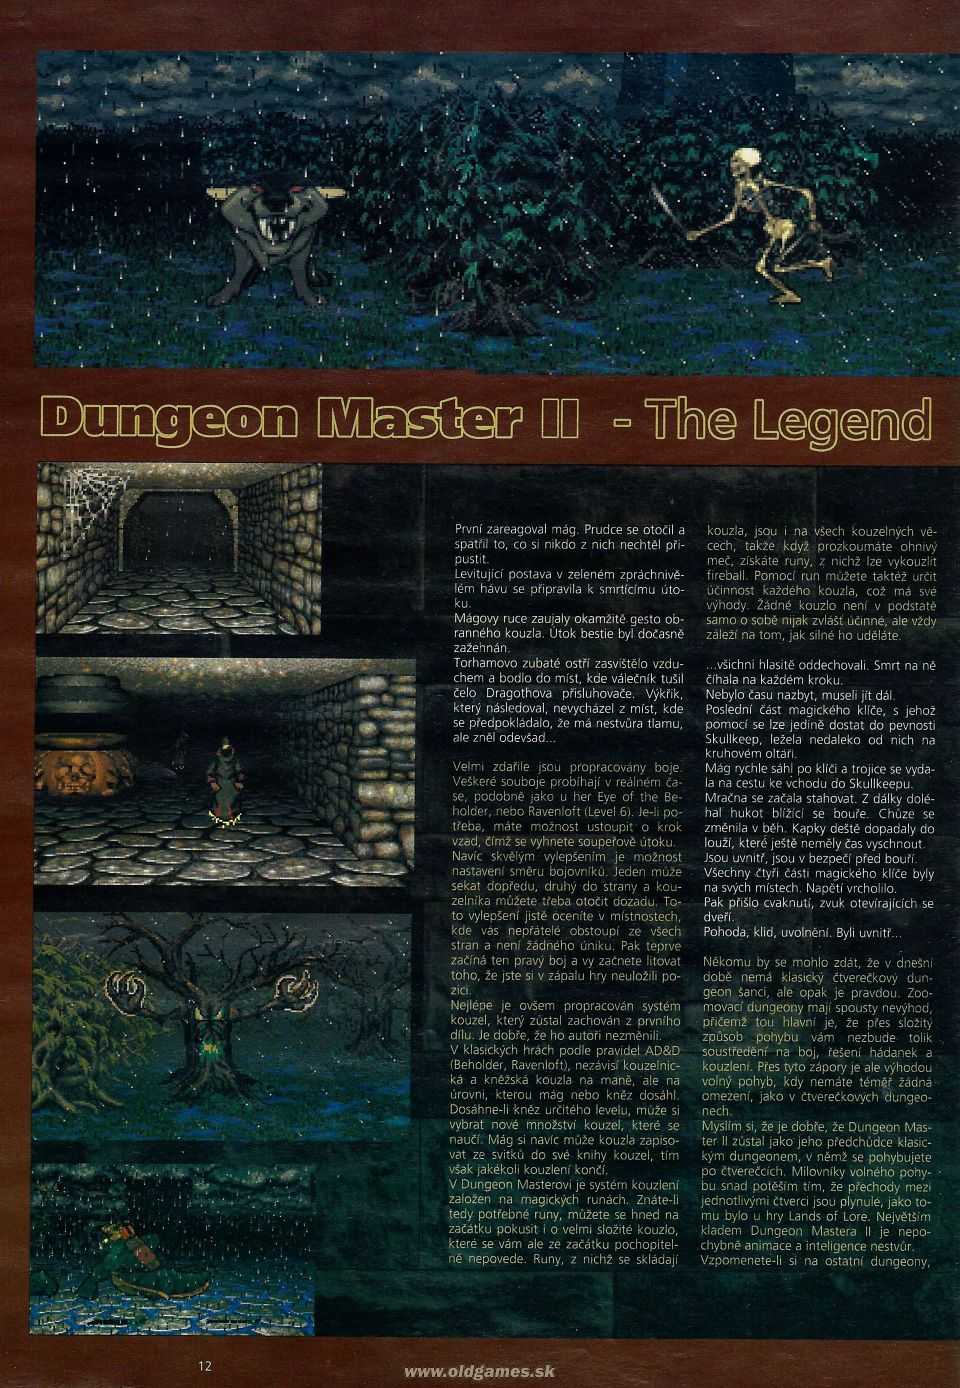 Dungeon Master II for PC Review published in Czech magazine 'Level', Issue #8 September 1995, Page 12